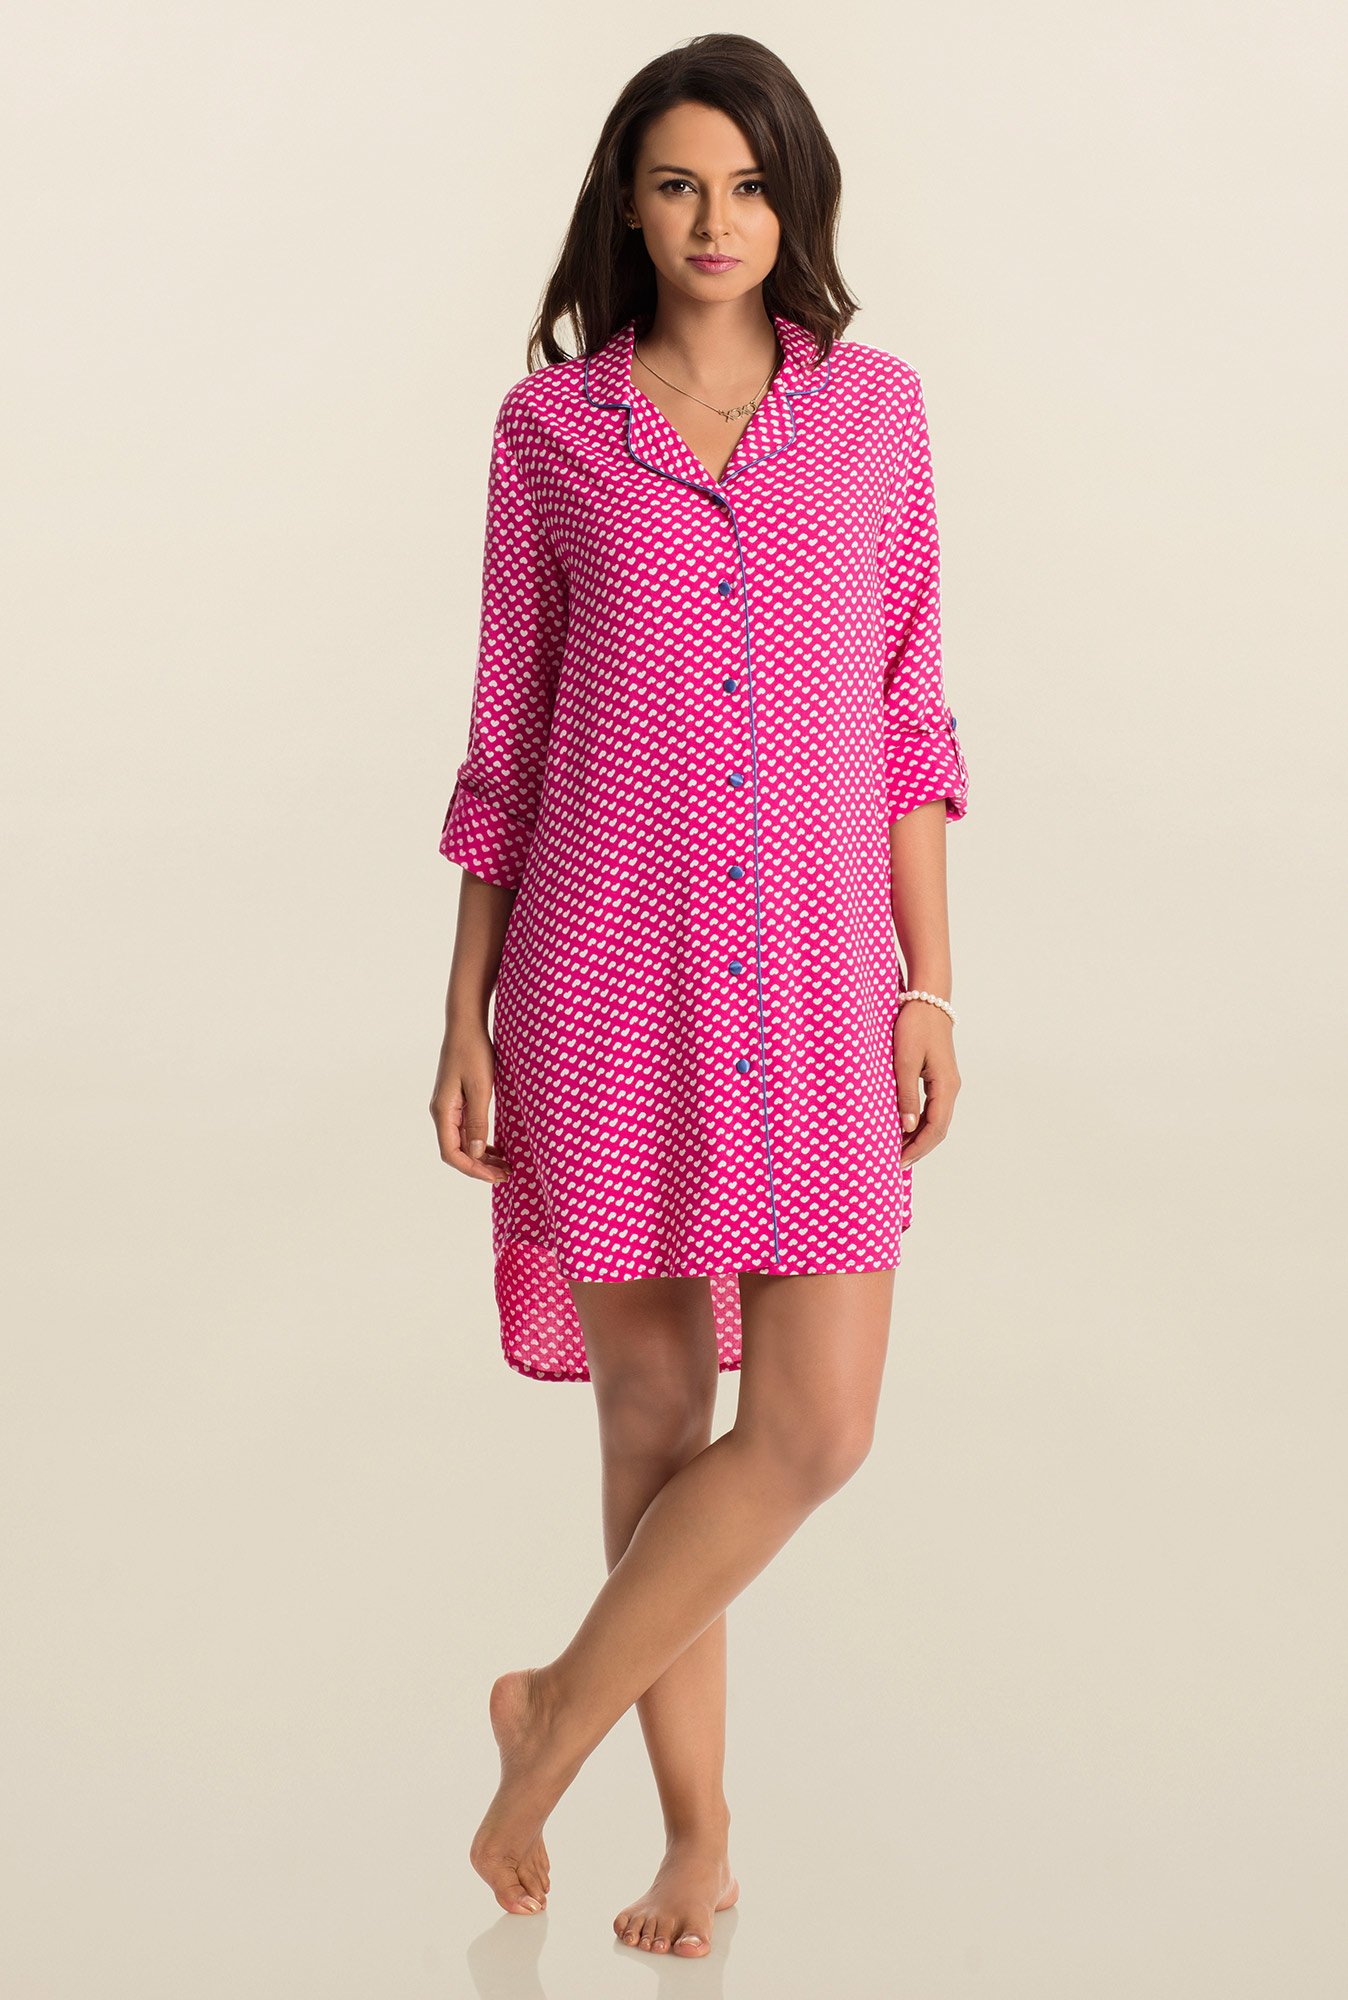 PrettySecrets Pink Snuggle Up Sleepshirt